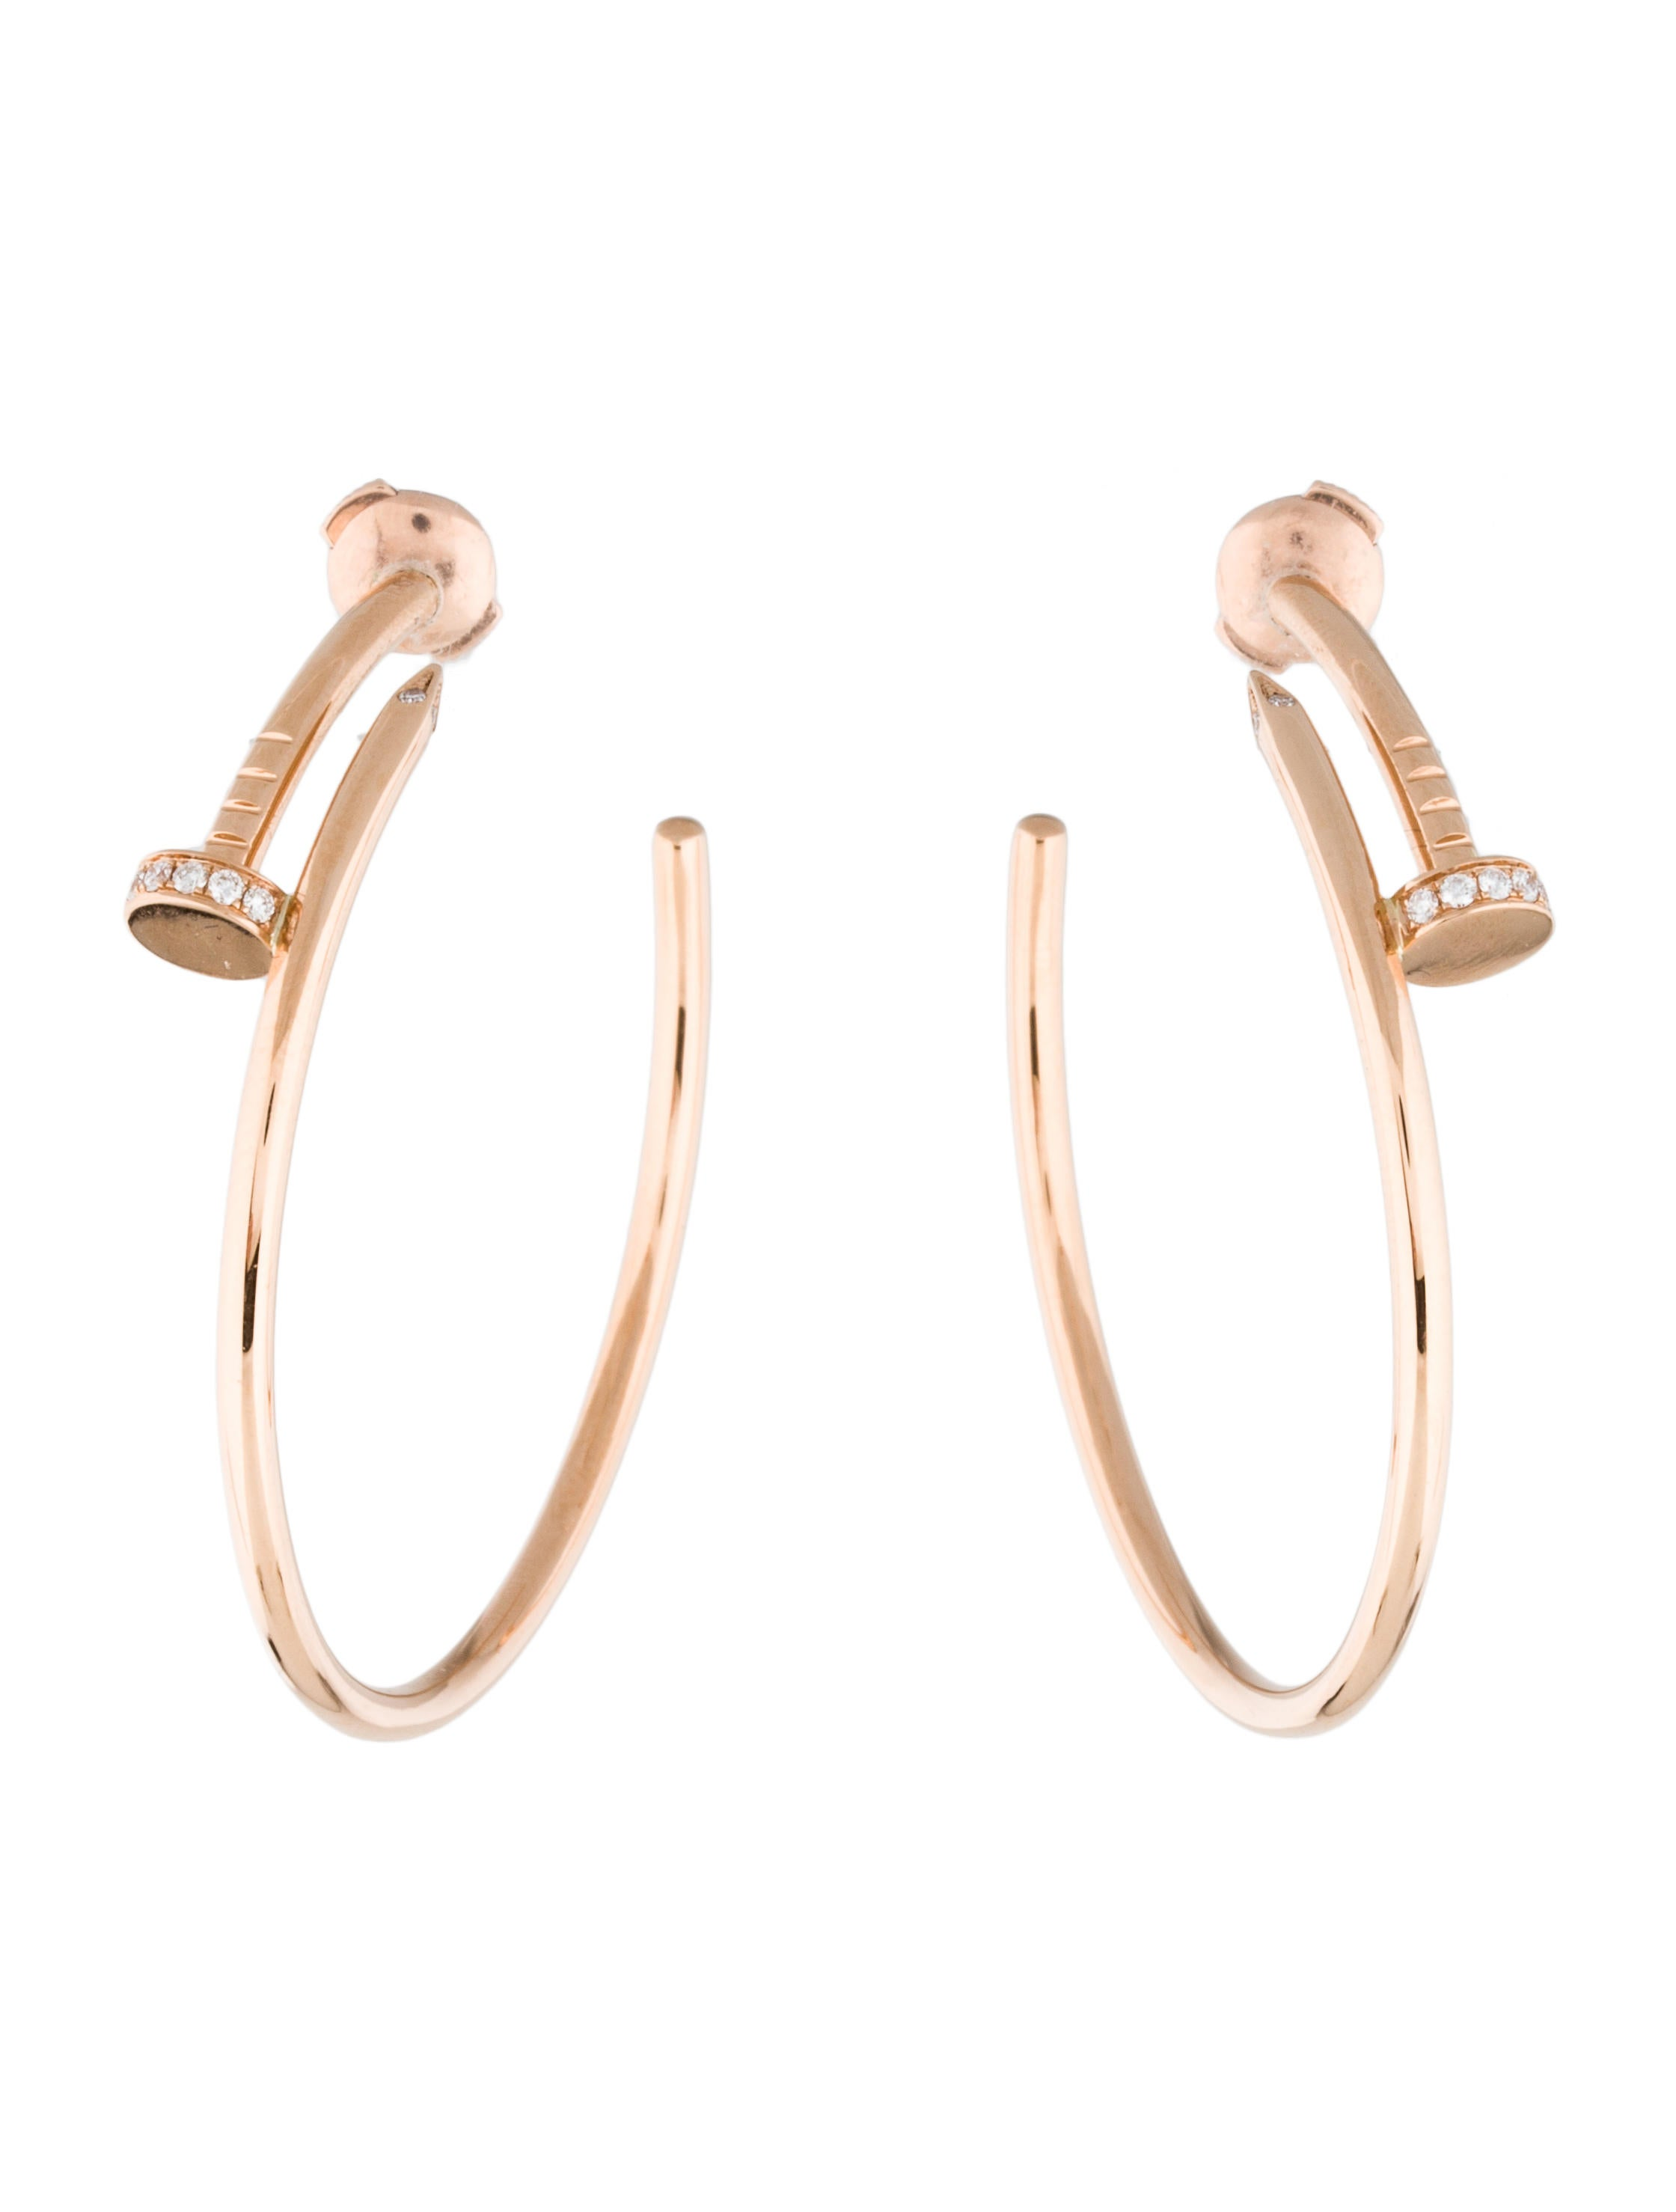 Cartier Diamond Juste Un Clou Earrings - Earrings ...